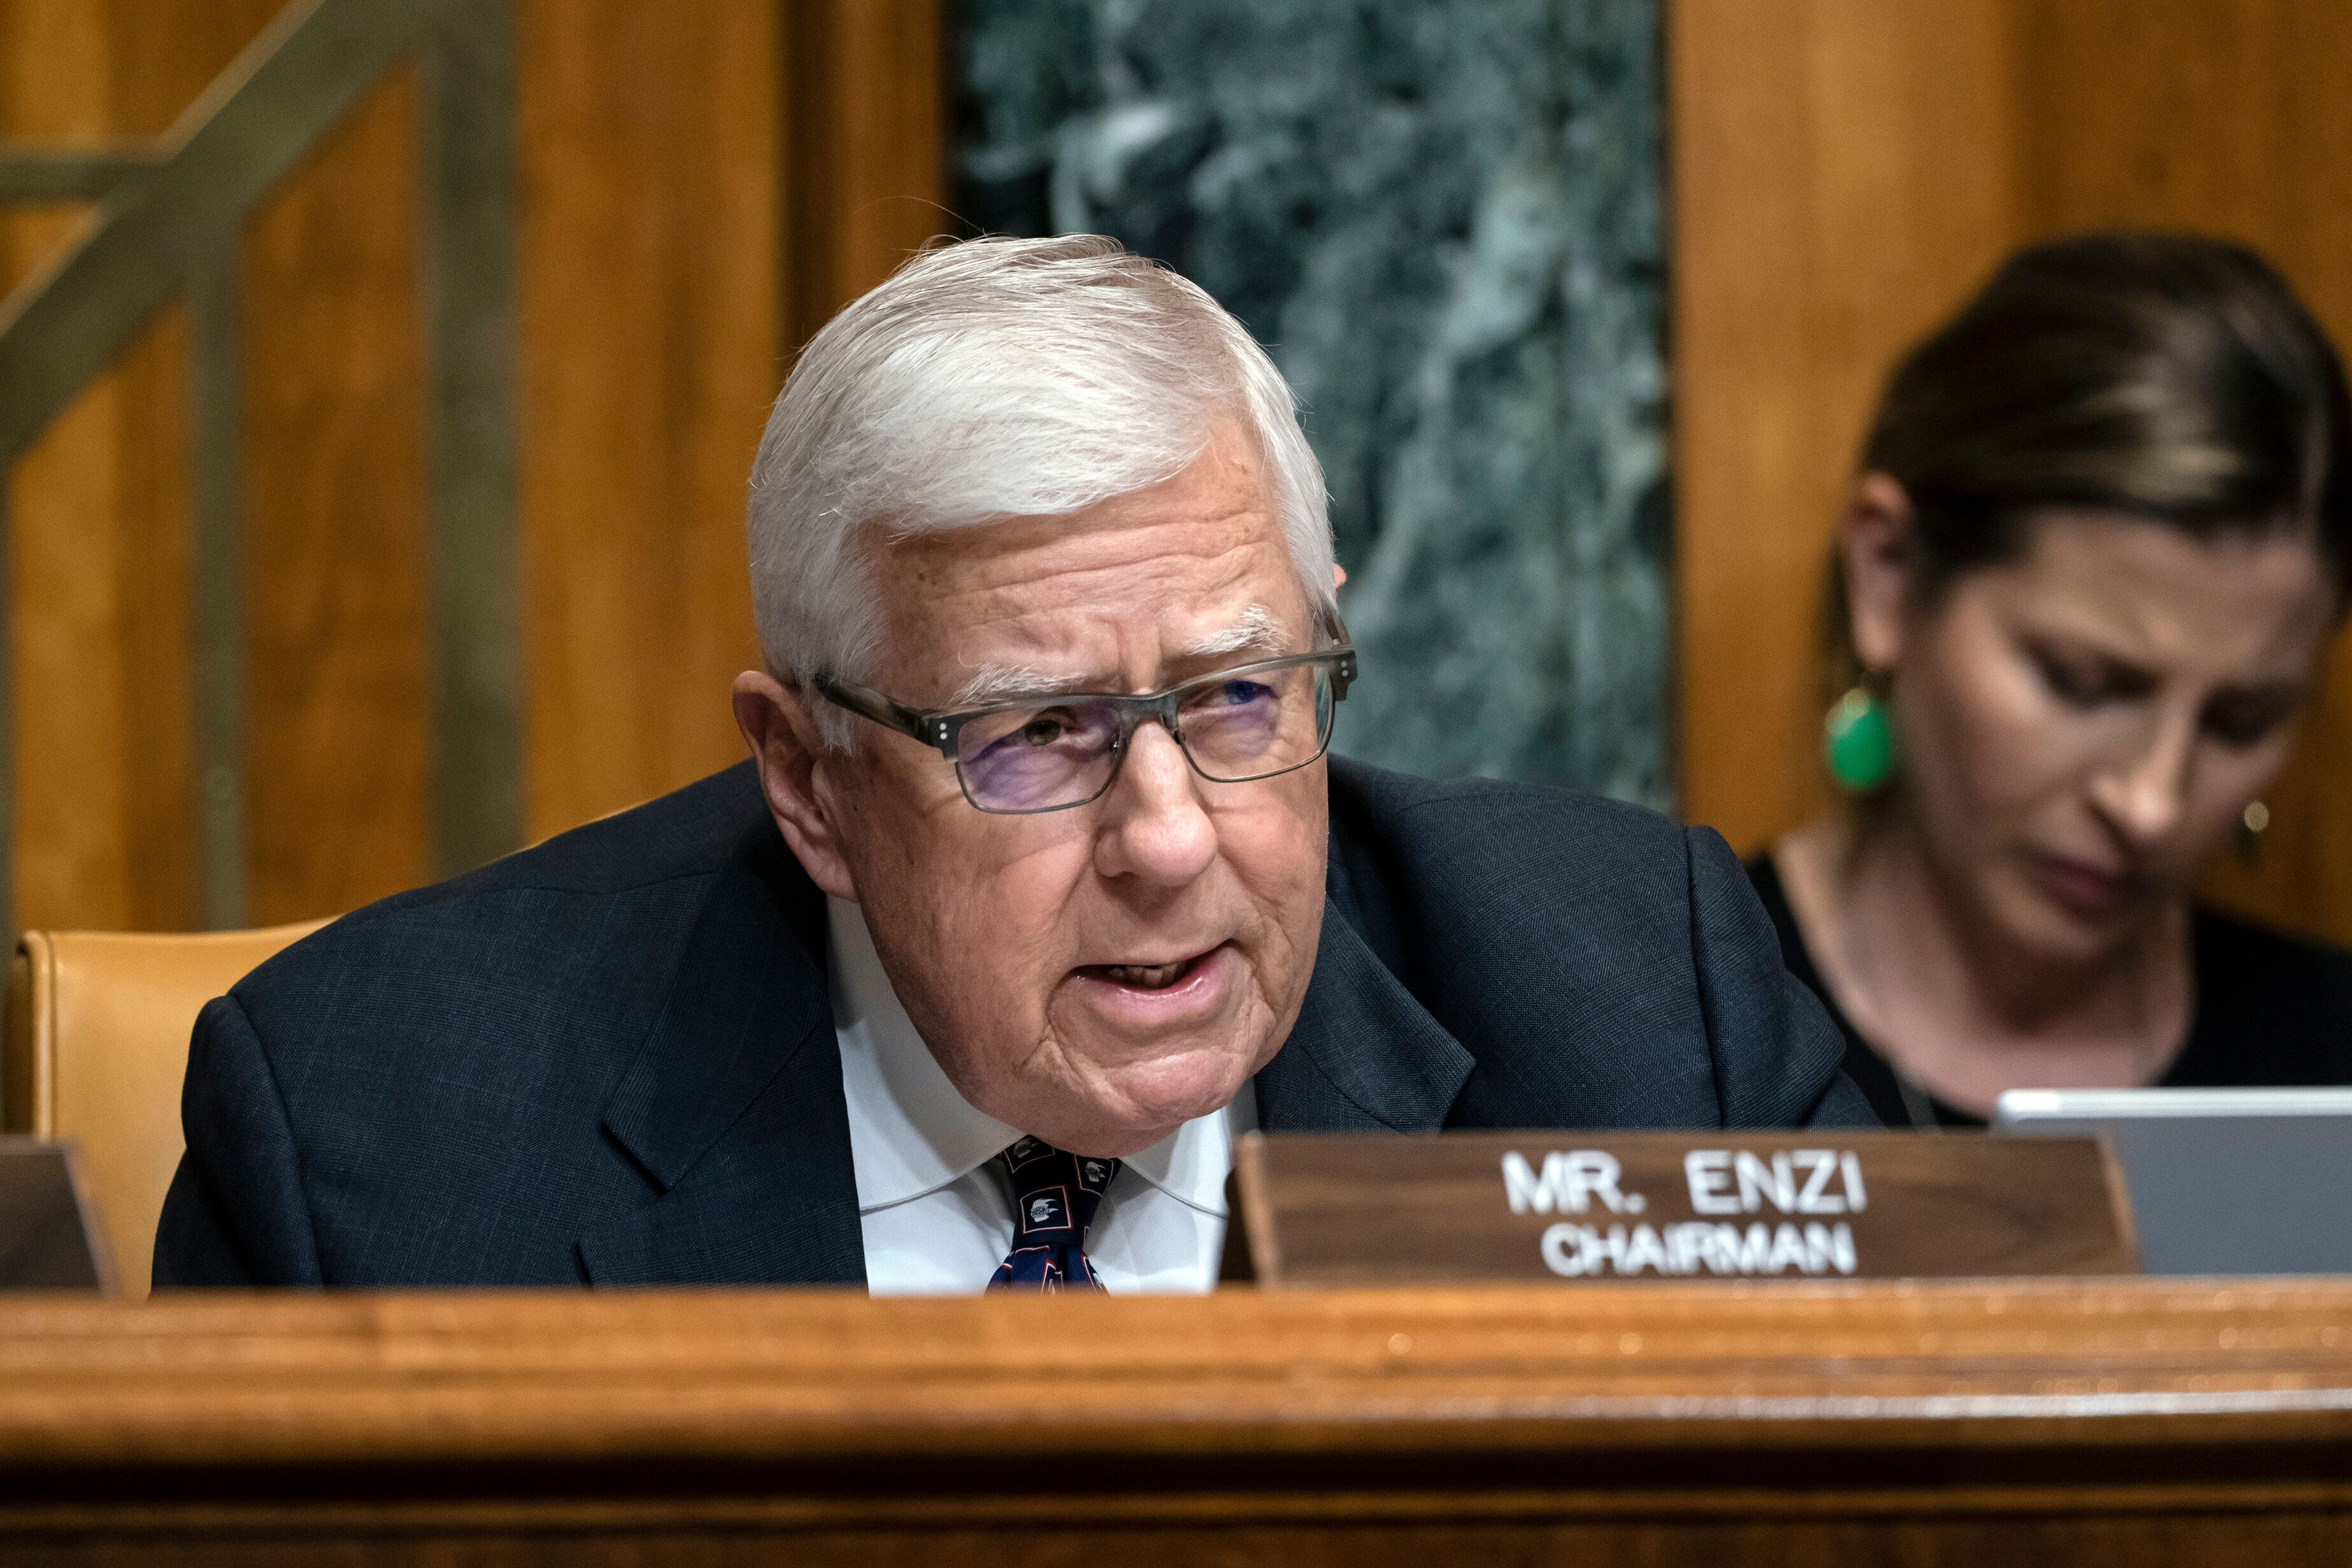 FILE - In this March 27, 2019 file photo, Sen. Mike Enzi, R-Wyo., chairman of the Senate Budget Committee, makes an opening statement on the fiscal year 2020 budget resolution, on Capitol Hill in Washington.  Enzi announced Saturday, May 4  that he will not run for a fifth term in 2020. The 75-year-old made the announcement in his hometown of Gillette. (AP Photo/J. Scott Applewhite, File)